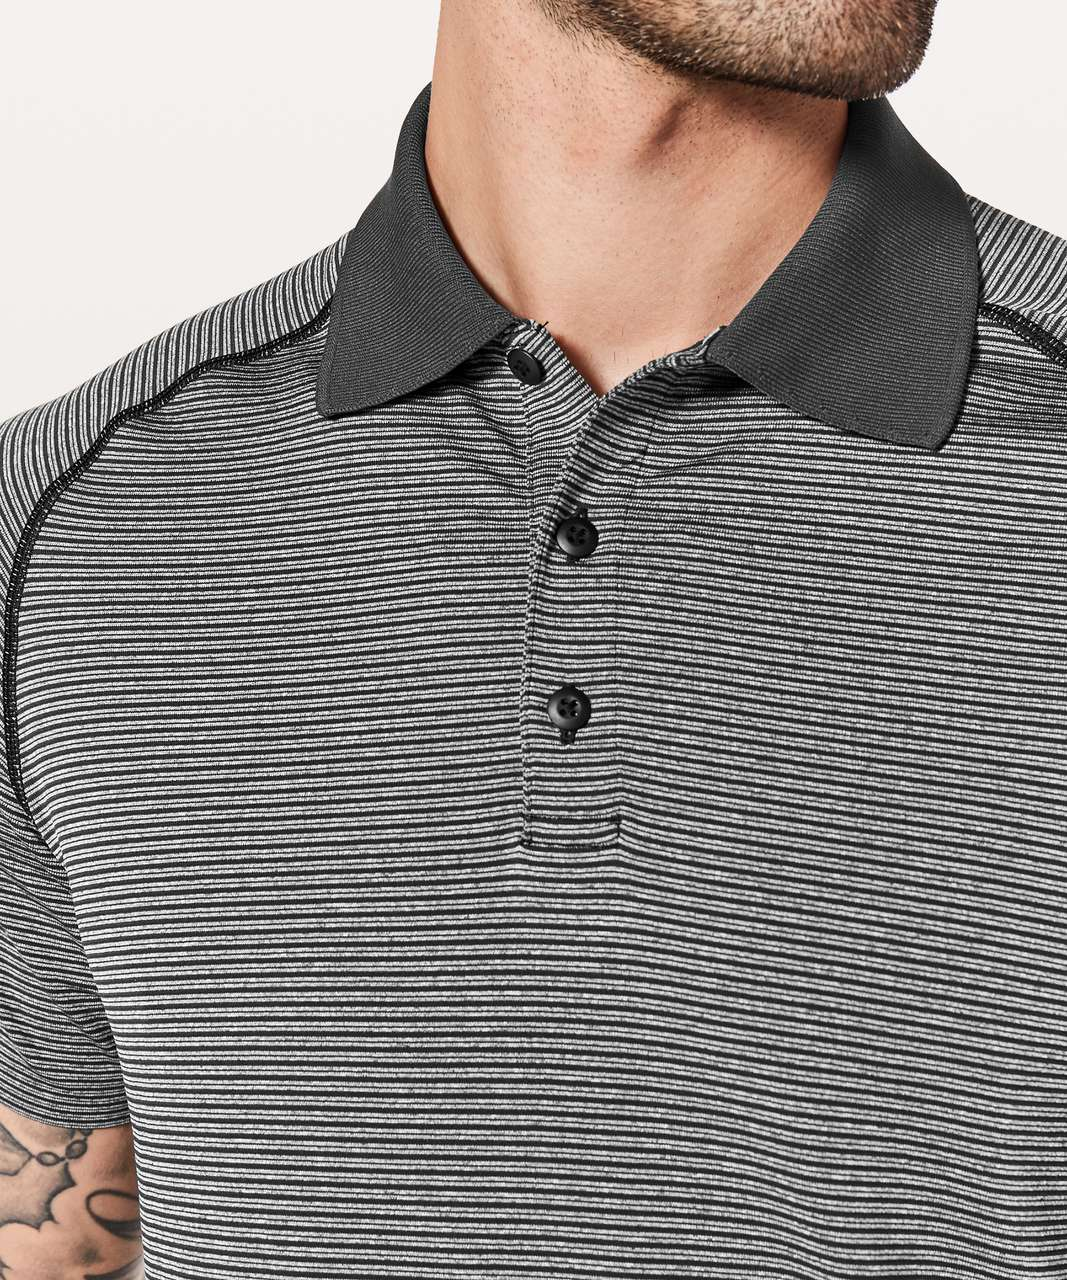 Lululemon Metal Vent Tech Polo - Black / White (Striped)